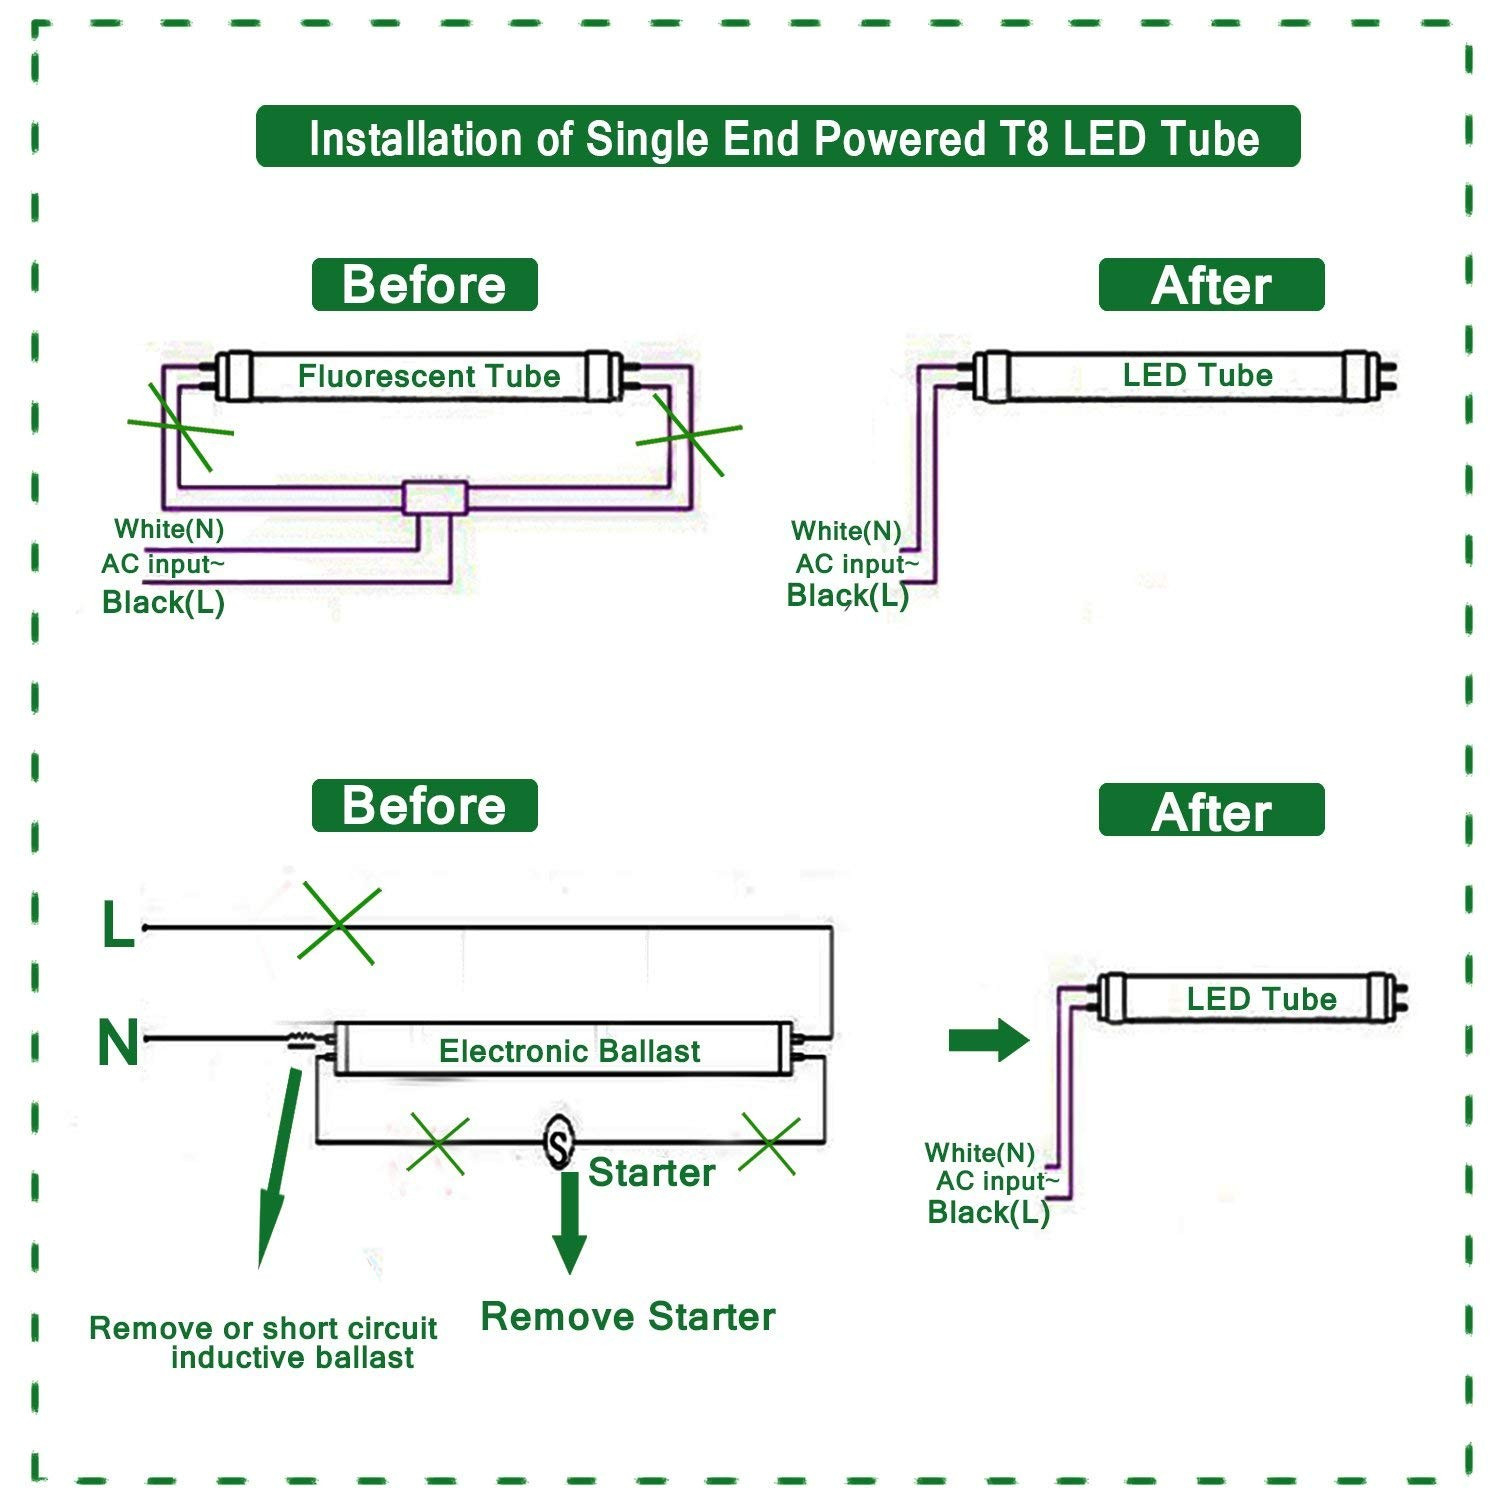 hight resolution of t8 led wiring diagram download fluro light wiring diagram australia save wiring diagram led tube